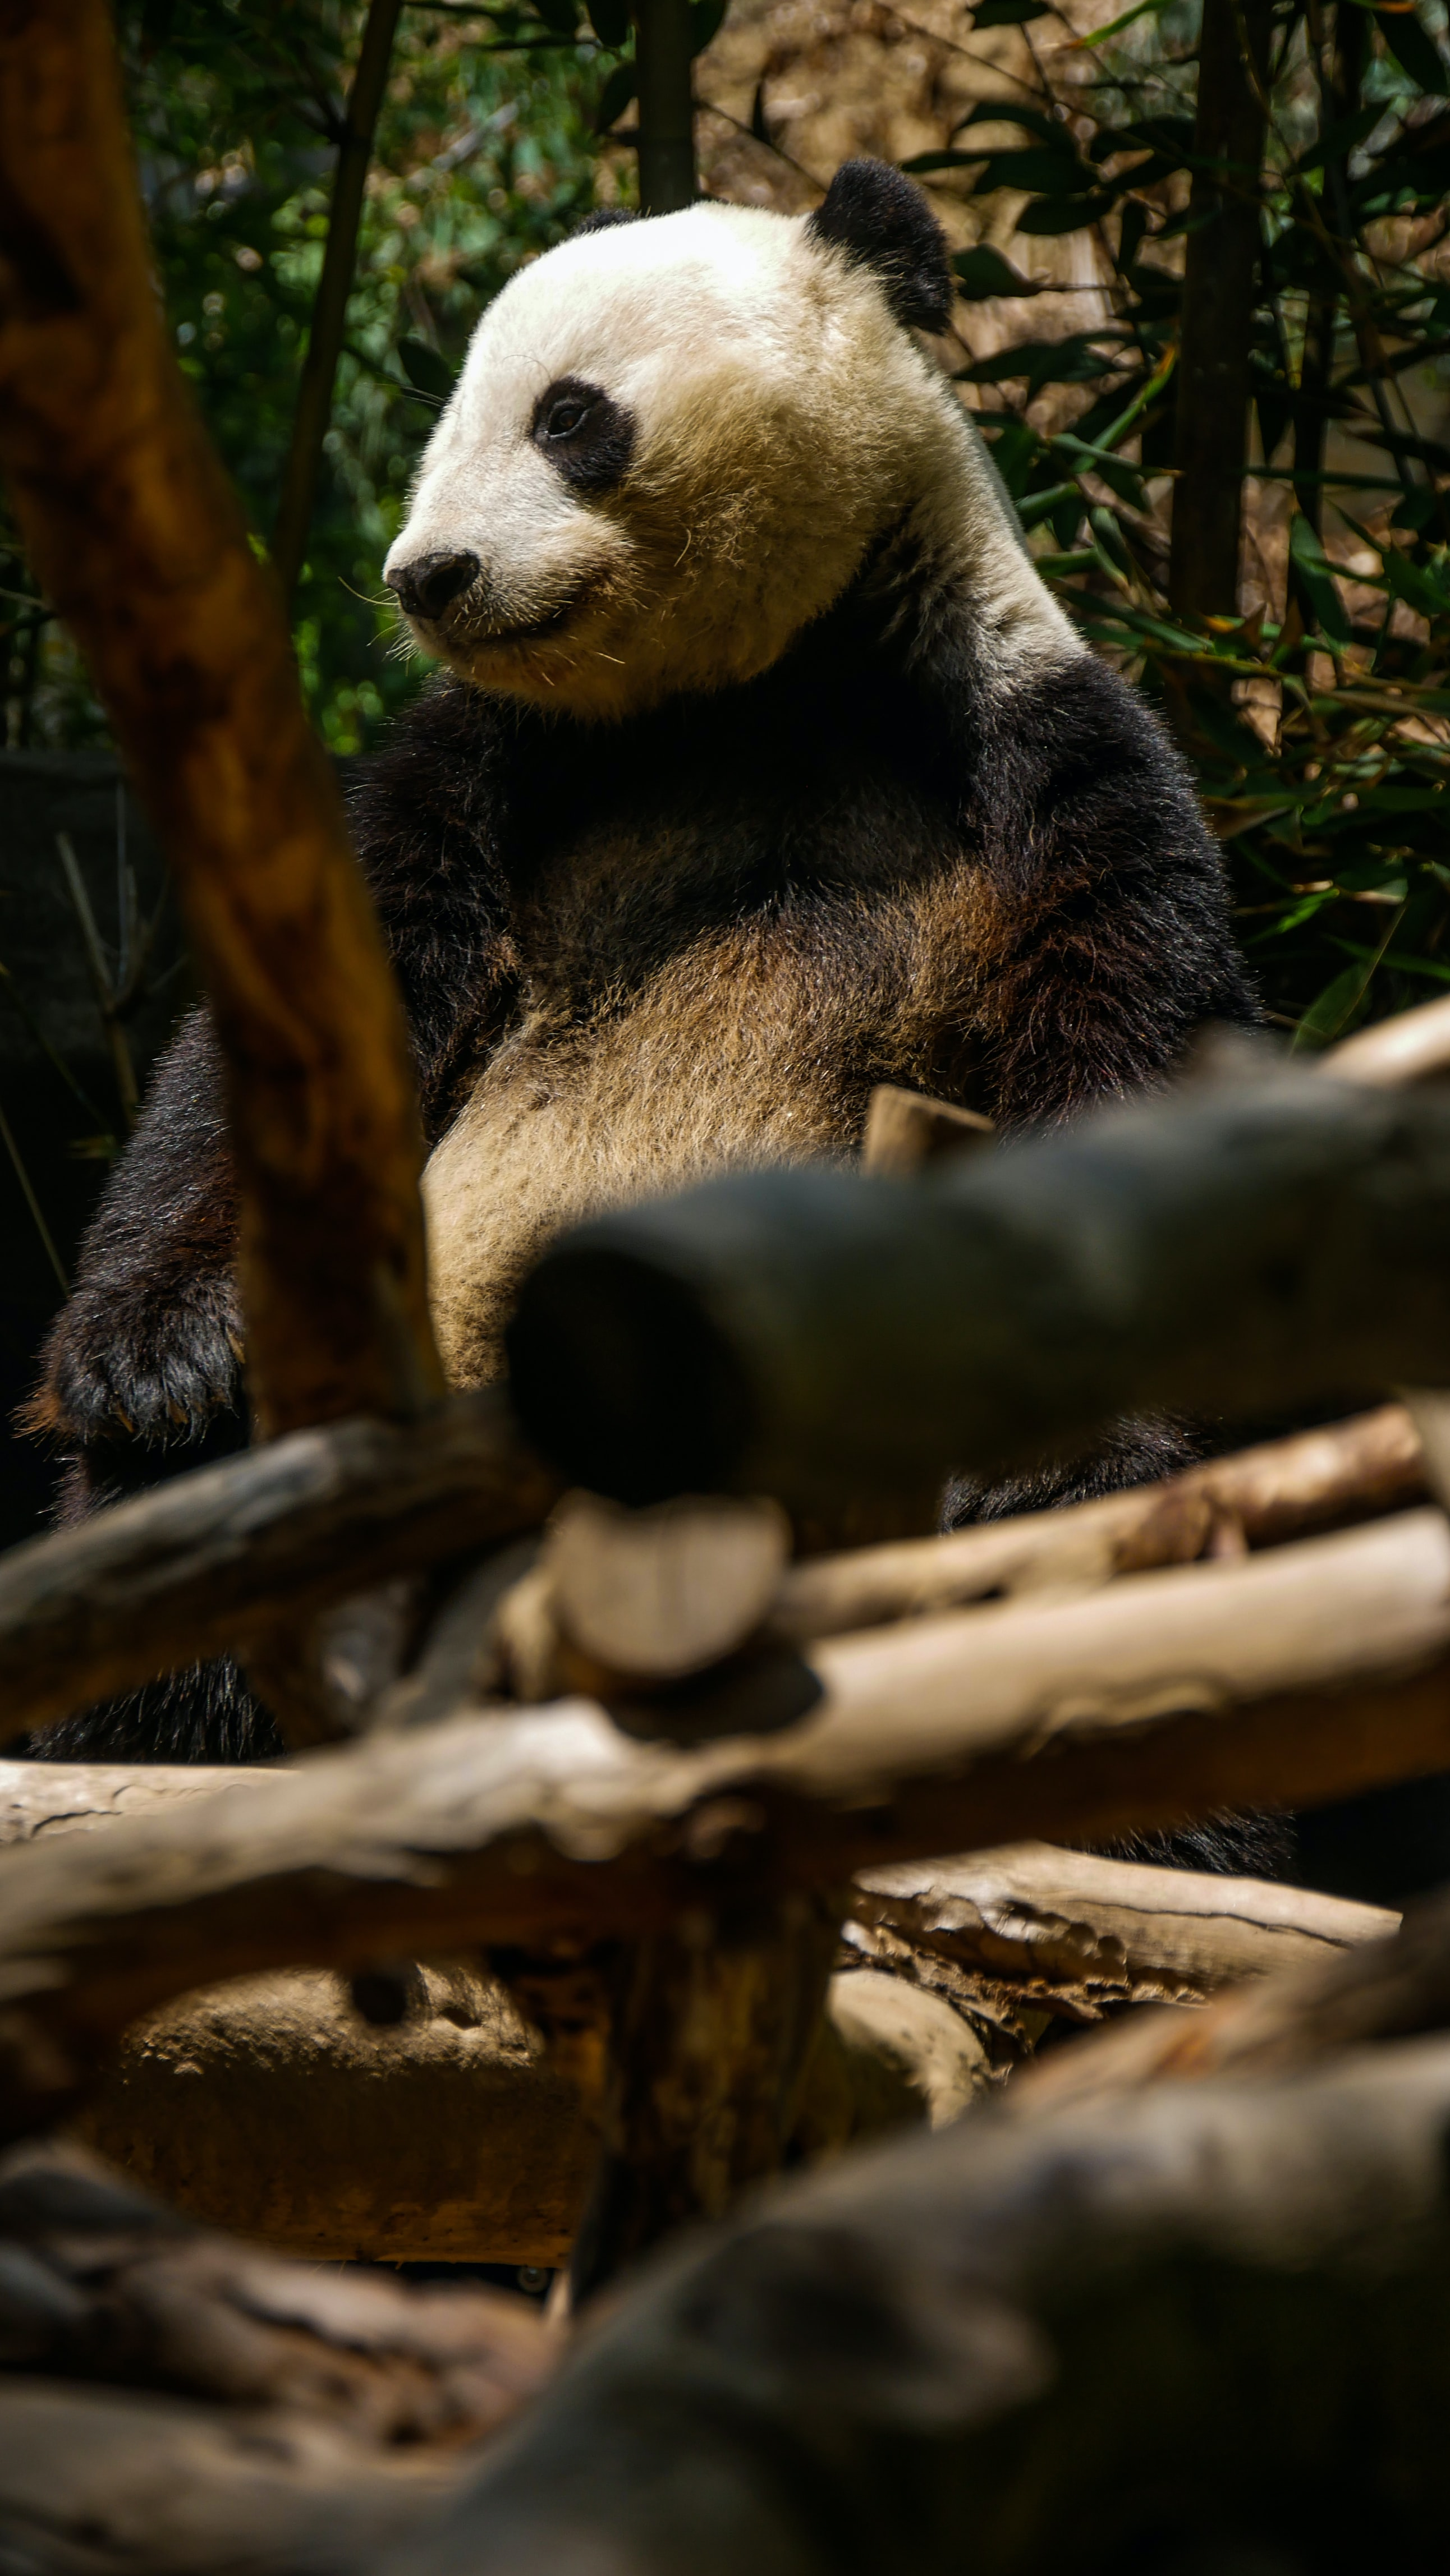 55715 download wallpaper Animals, Panda, Nice, Sweetheart, Trees, Bamboo screensavers and pictures for free